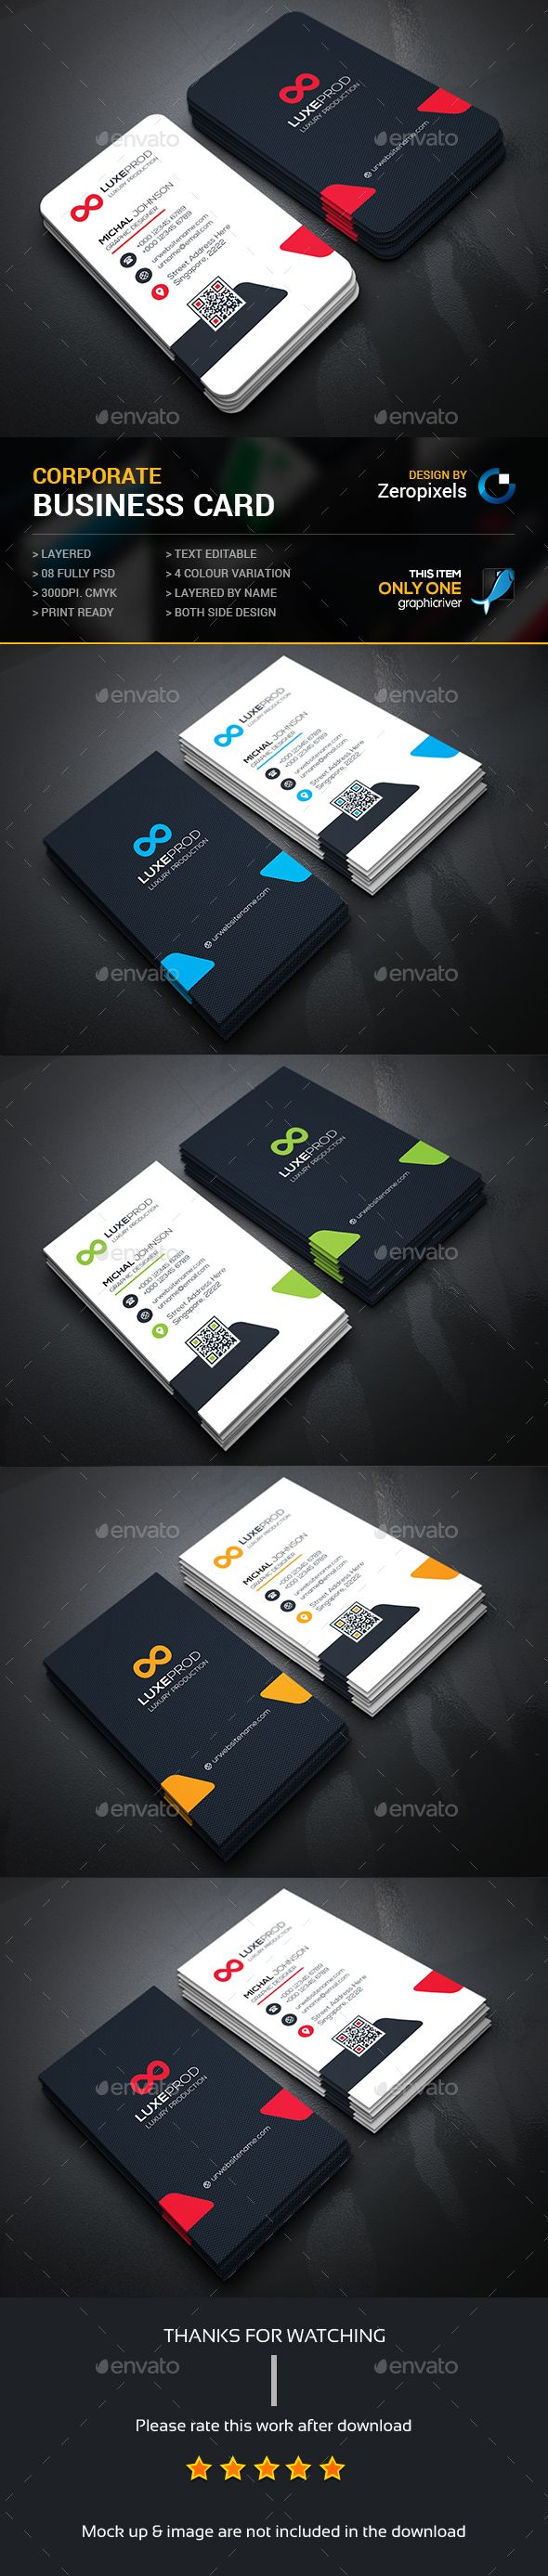 Corporate Business Card — Photoshop PSD #green #both side design • Available here → https://graphicriver.net/item/corporate-business-card/15620673?ref=pxcr